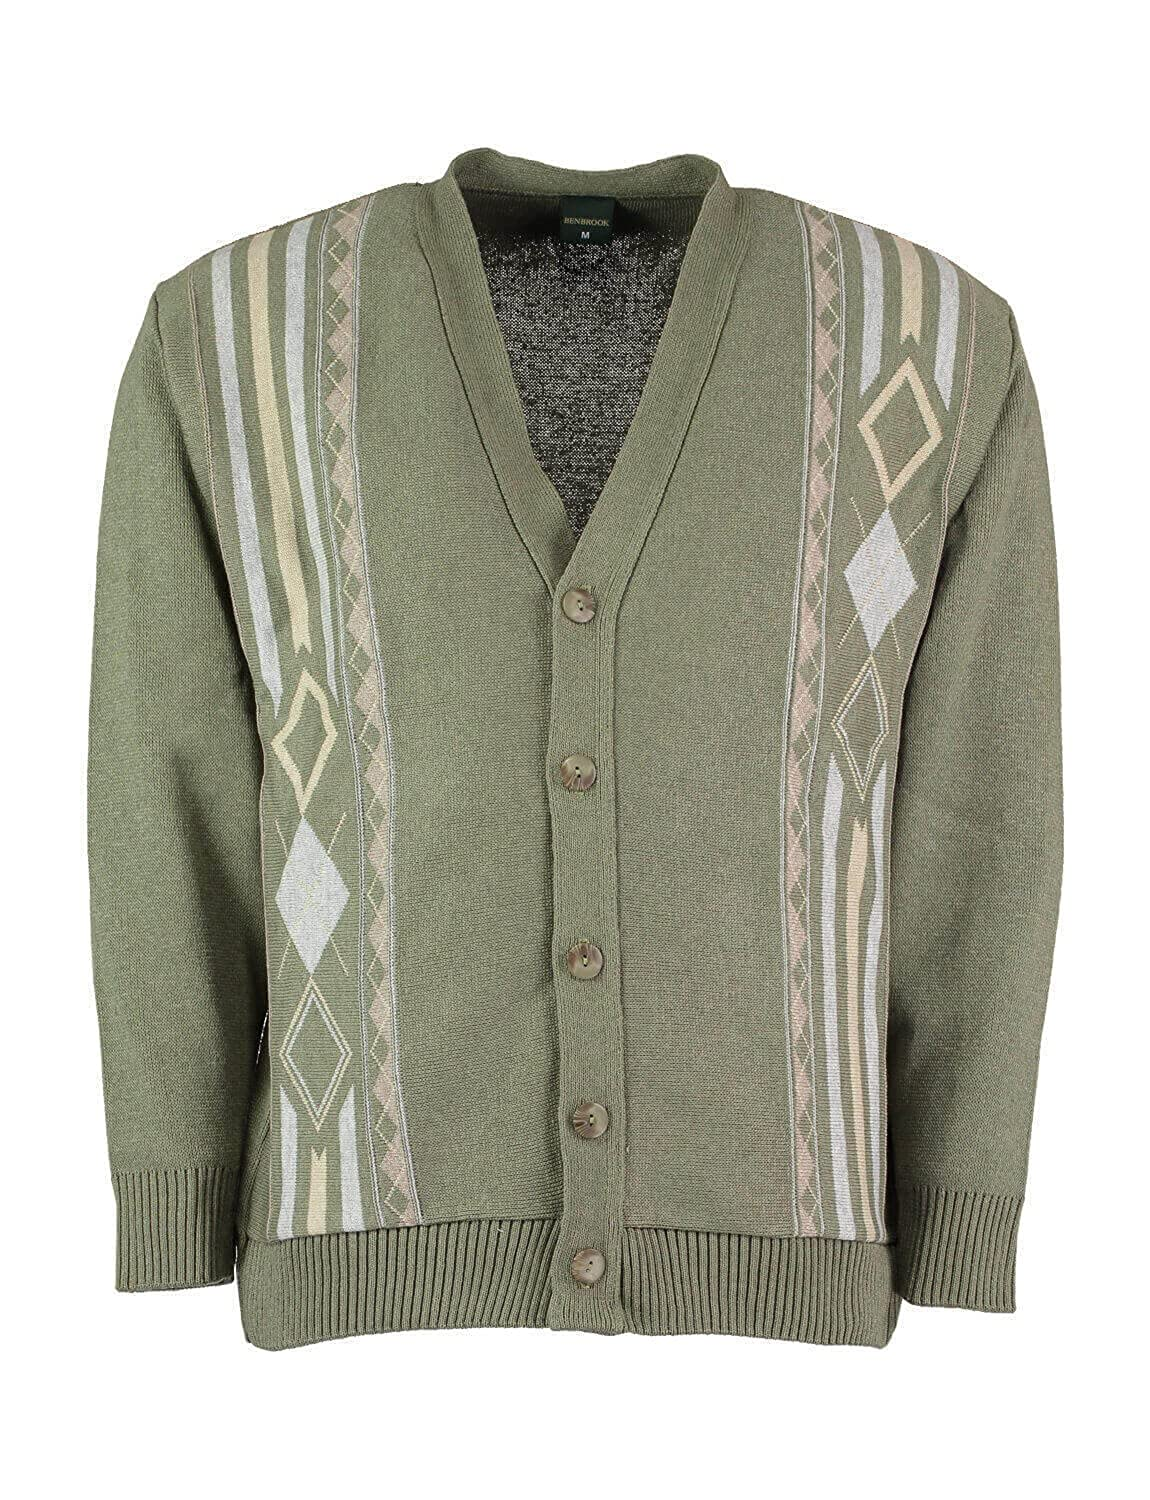 60s 70s Men's Jackets & Sweaters Benbrook Mens Jaquard Button Cardigan $61.10 AT vintagedancer.com